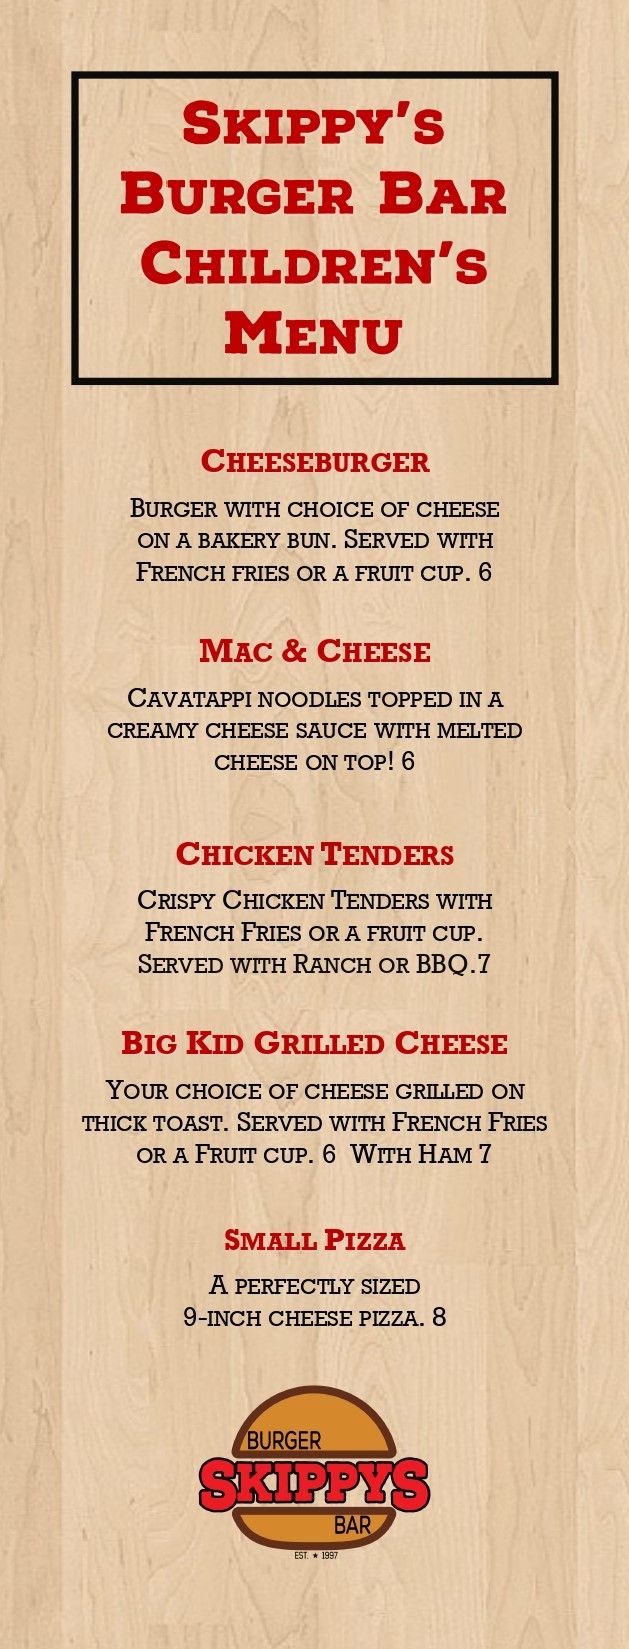 Skippys Menu 2020 - Kids_page-0001